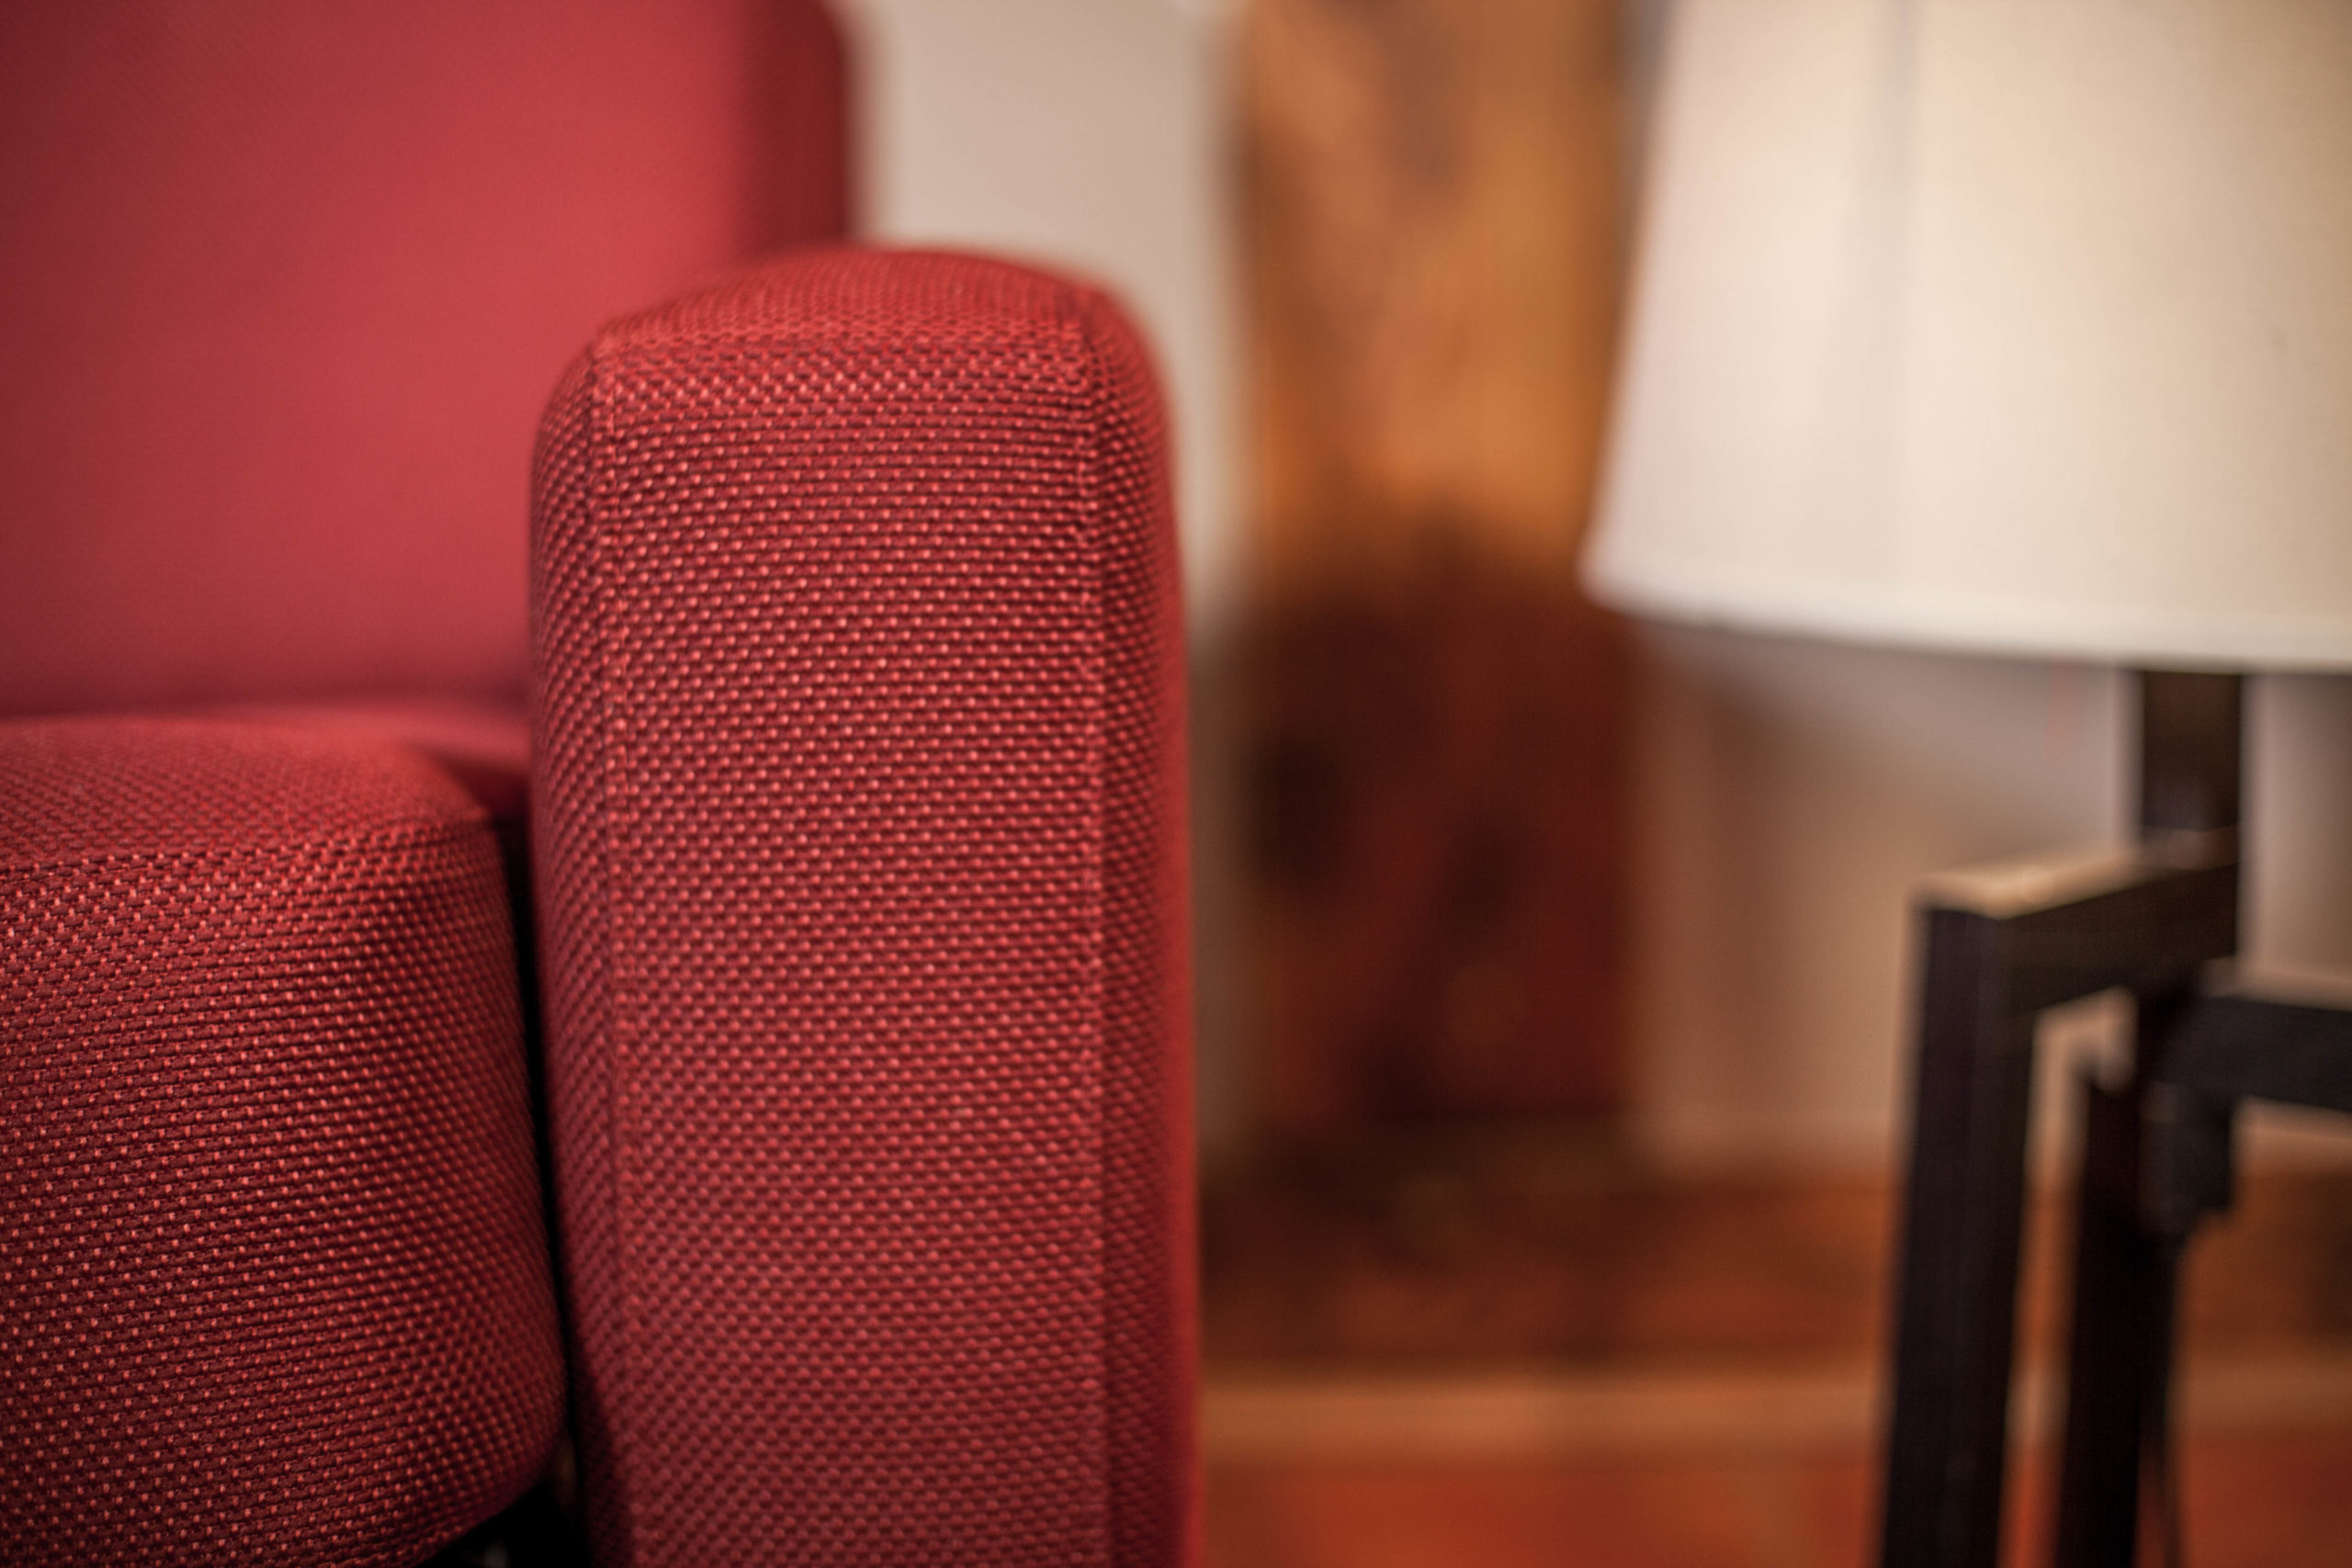 red armrest of the hotel sofa bed